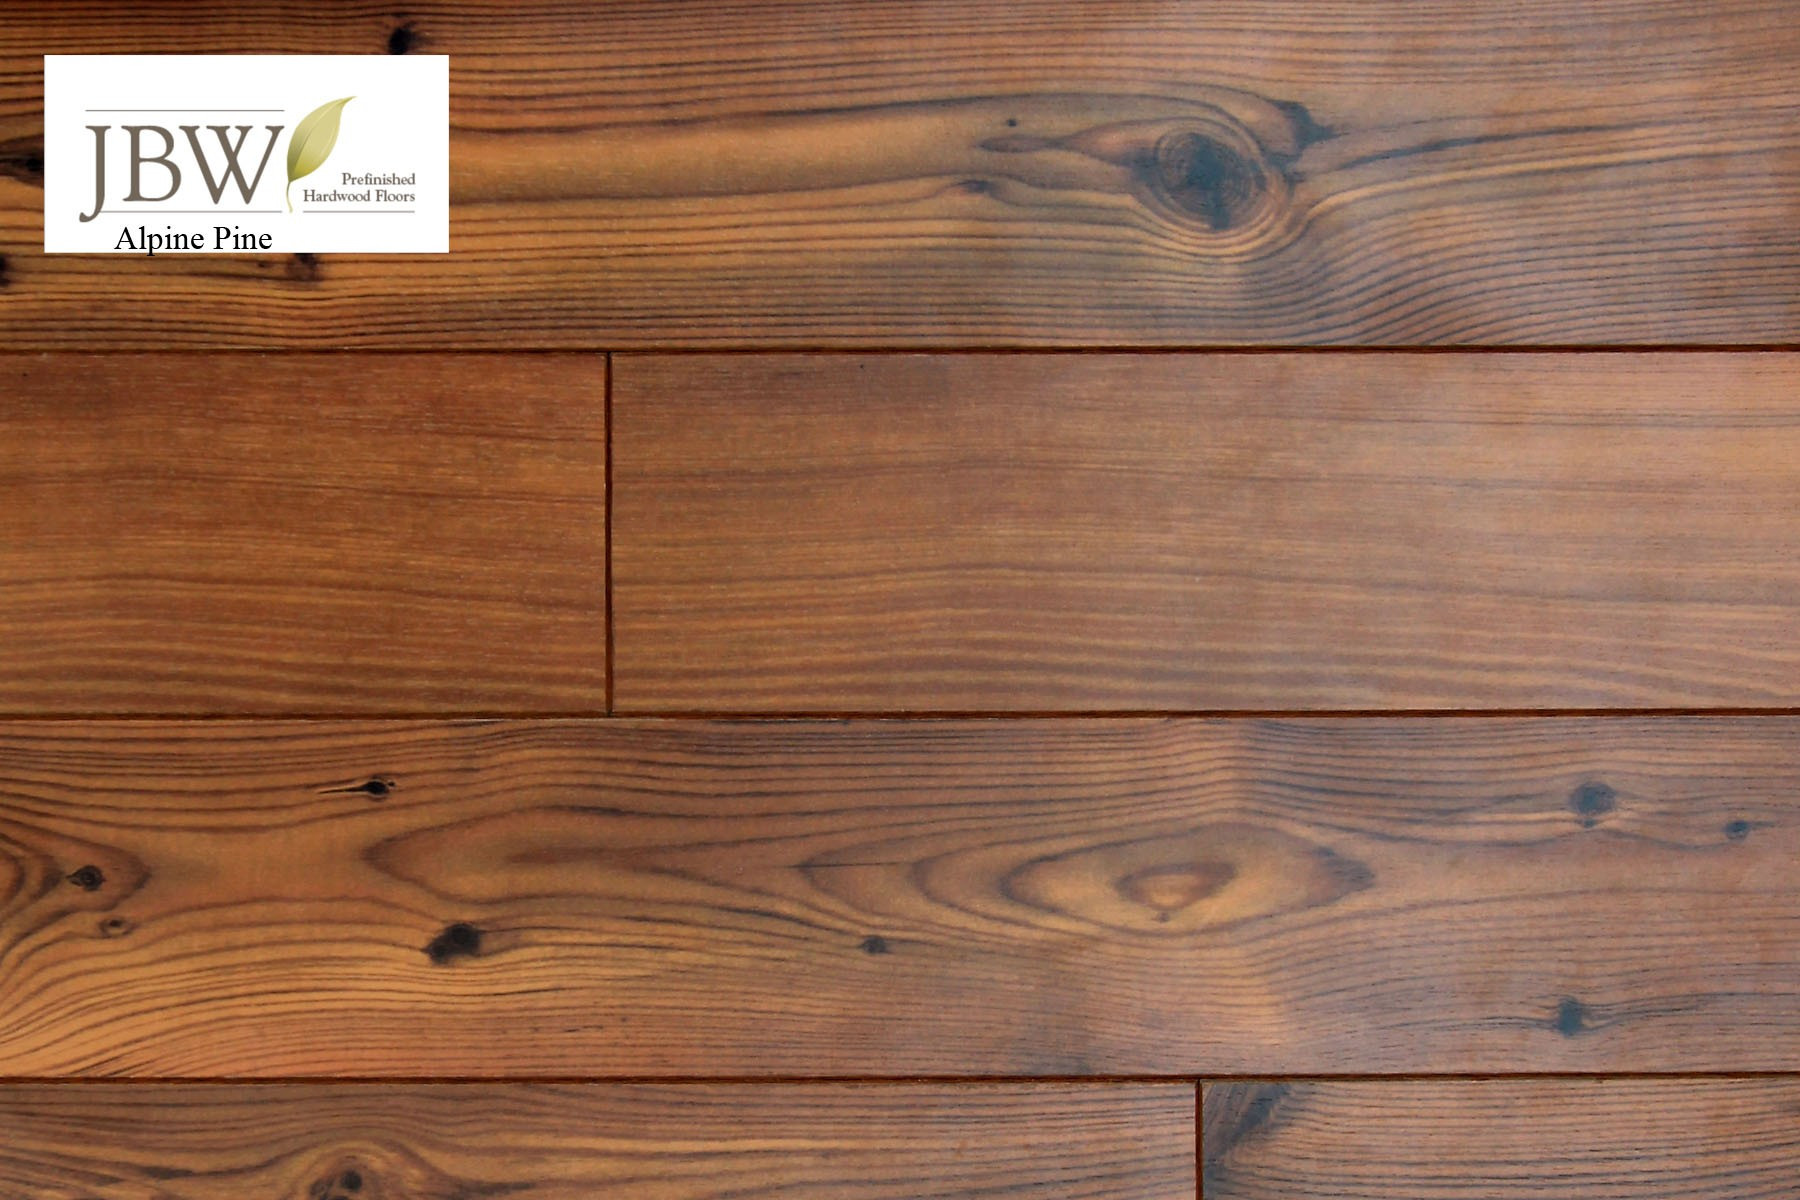 19 Unique How Much Do Engineered Hardwood Floors Cost 2021 free download how much do engineered hardwood floors cost of hardwood flooring vs engineered hardwood floor vs laminate awesome in hardwood flooring vs engineered hardwood floor vs laminate awesome vinyl